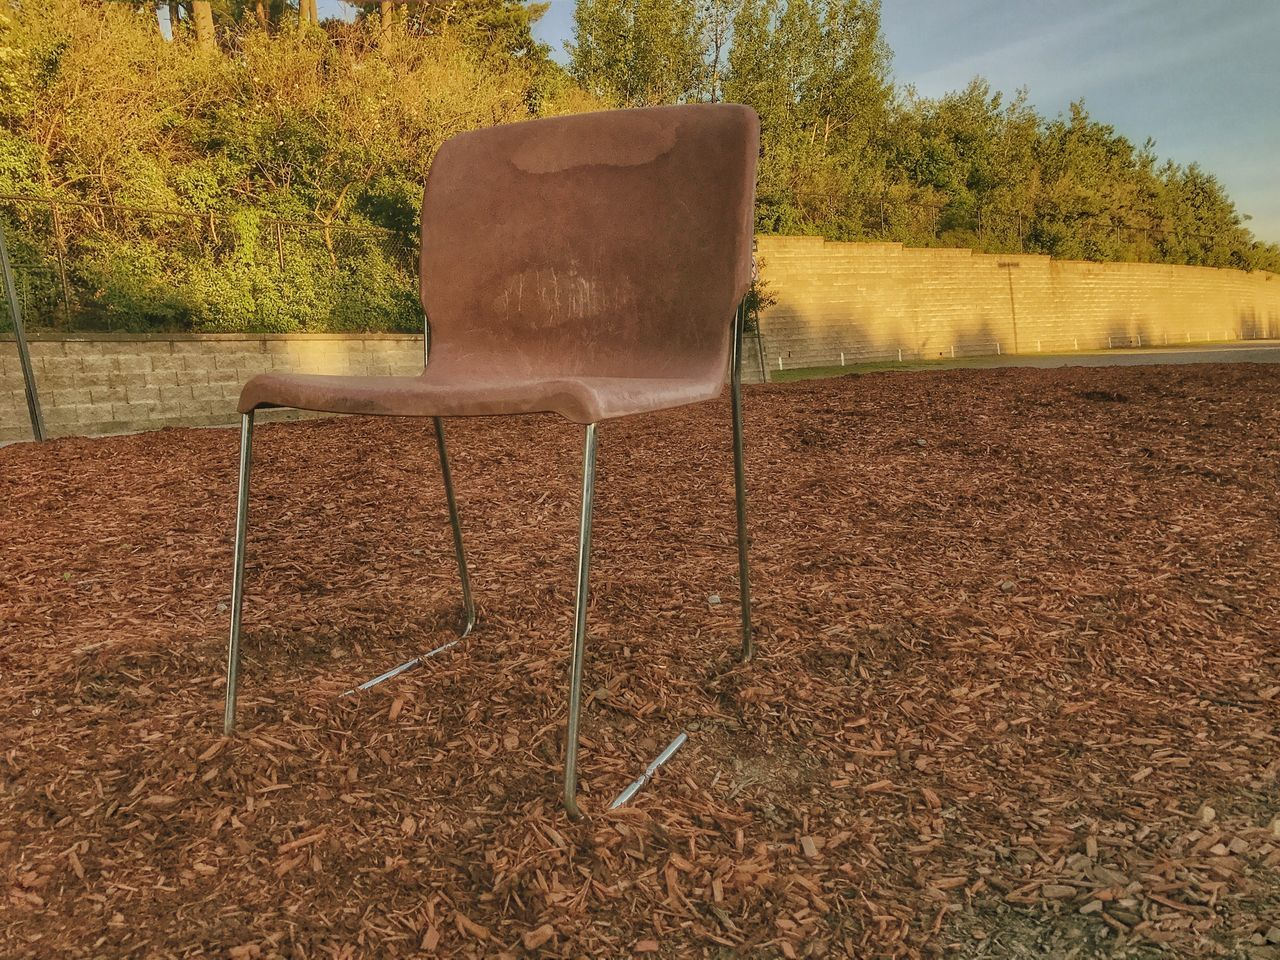 chair, absence, no people, seat, field, day, tree, outdoors, landscape, nature, beauty in nature, grass, sky